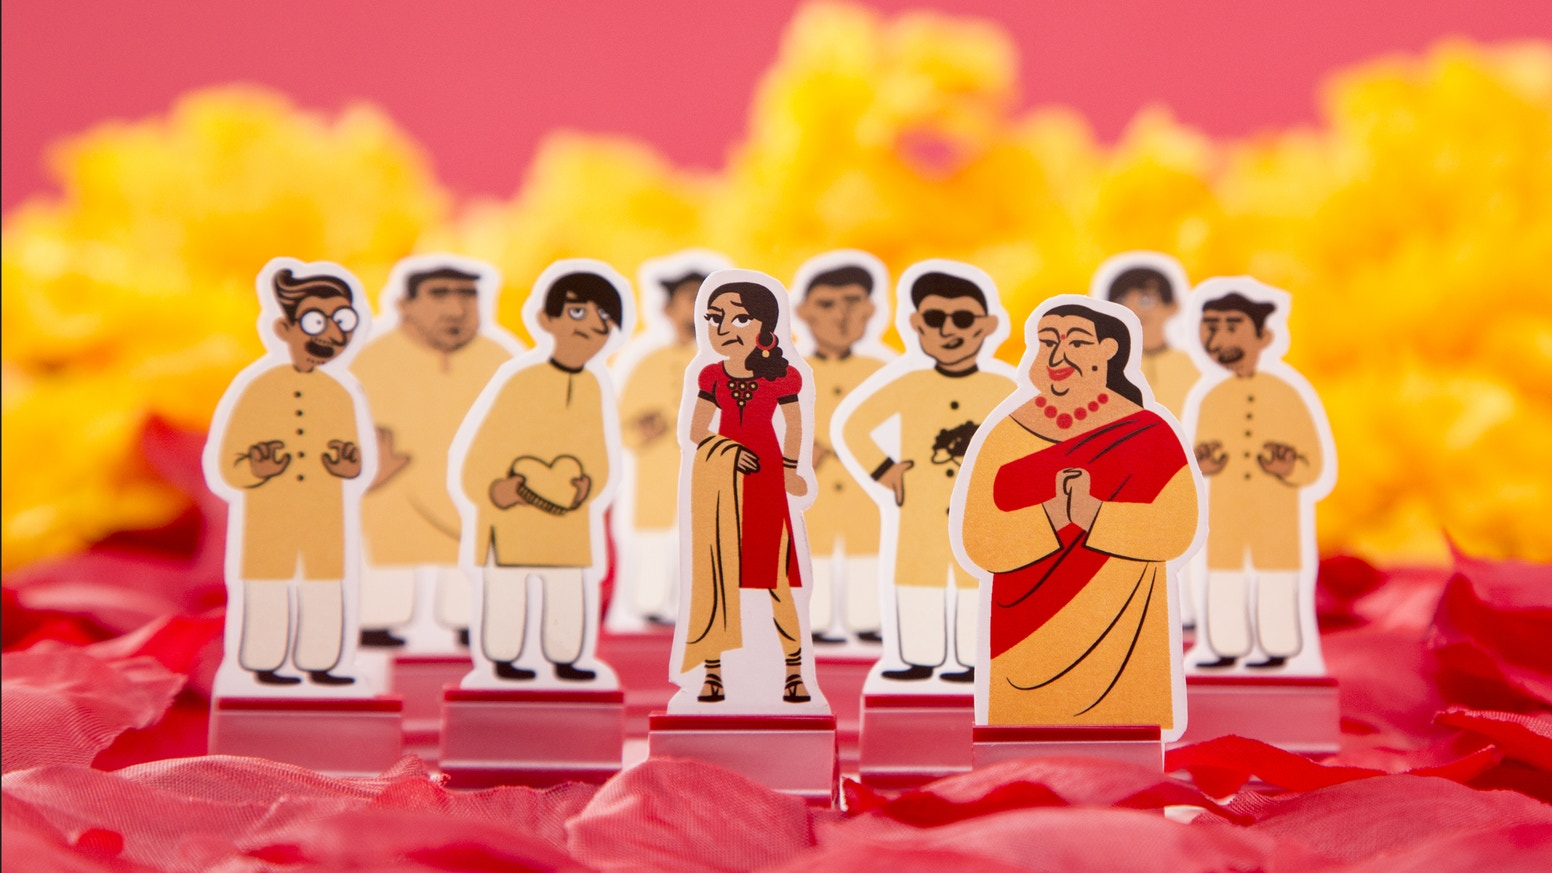 Arranged! is a board game that forces participants to confront the struggles of an Arranged Marriage